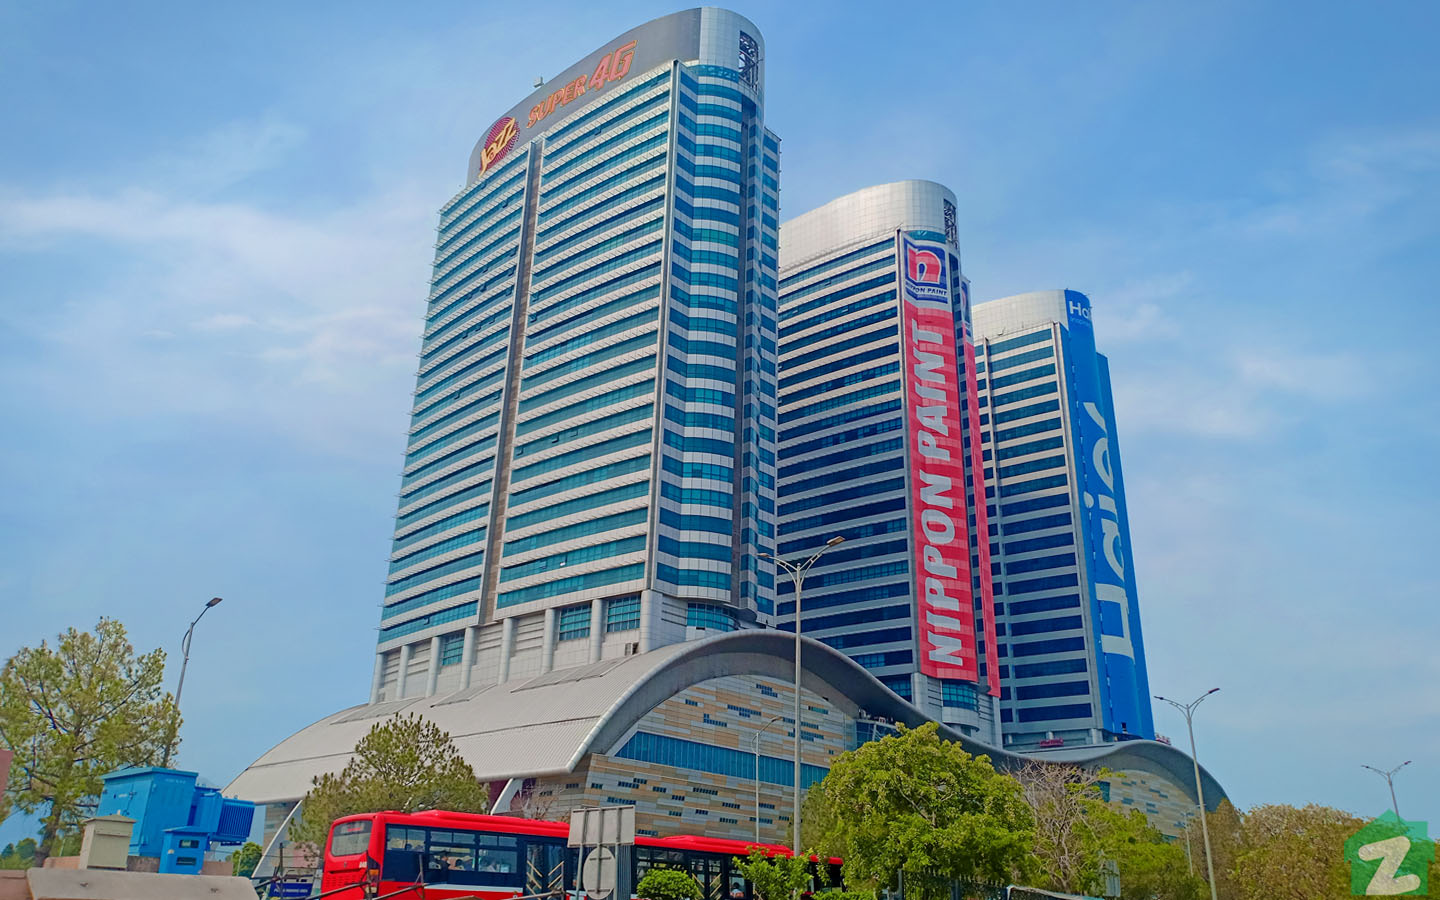 Centaurus Mall is one of the most significant landmarks in Islamabad